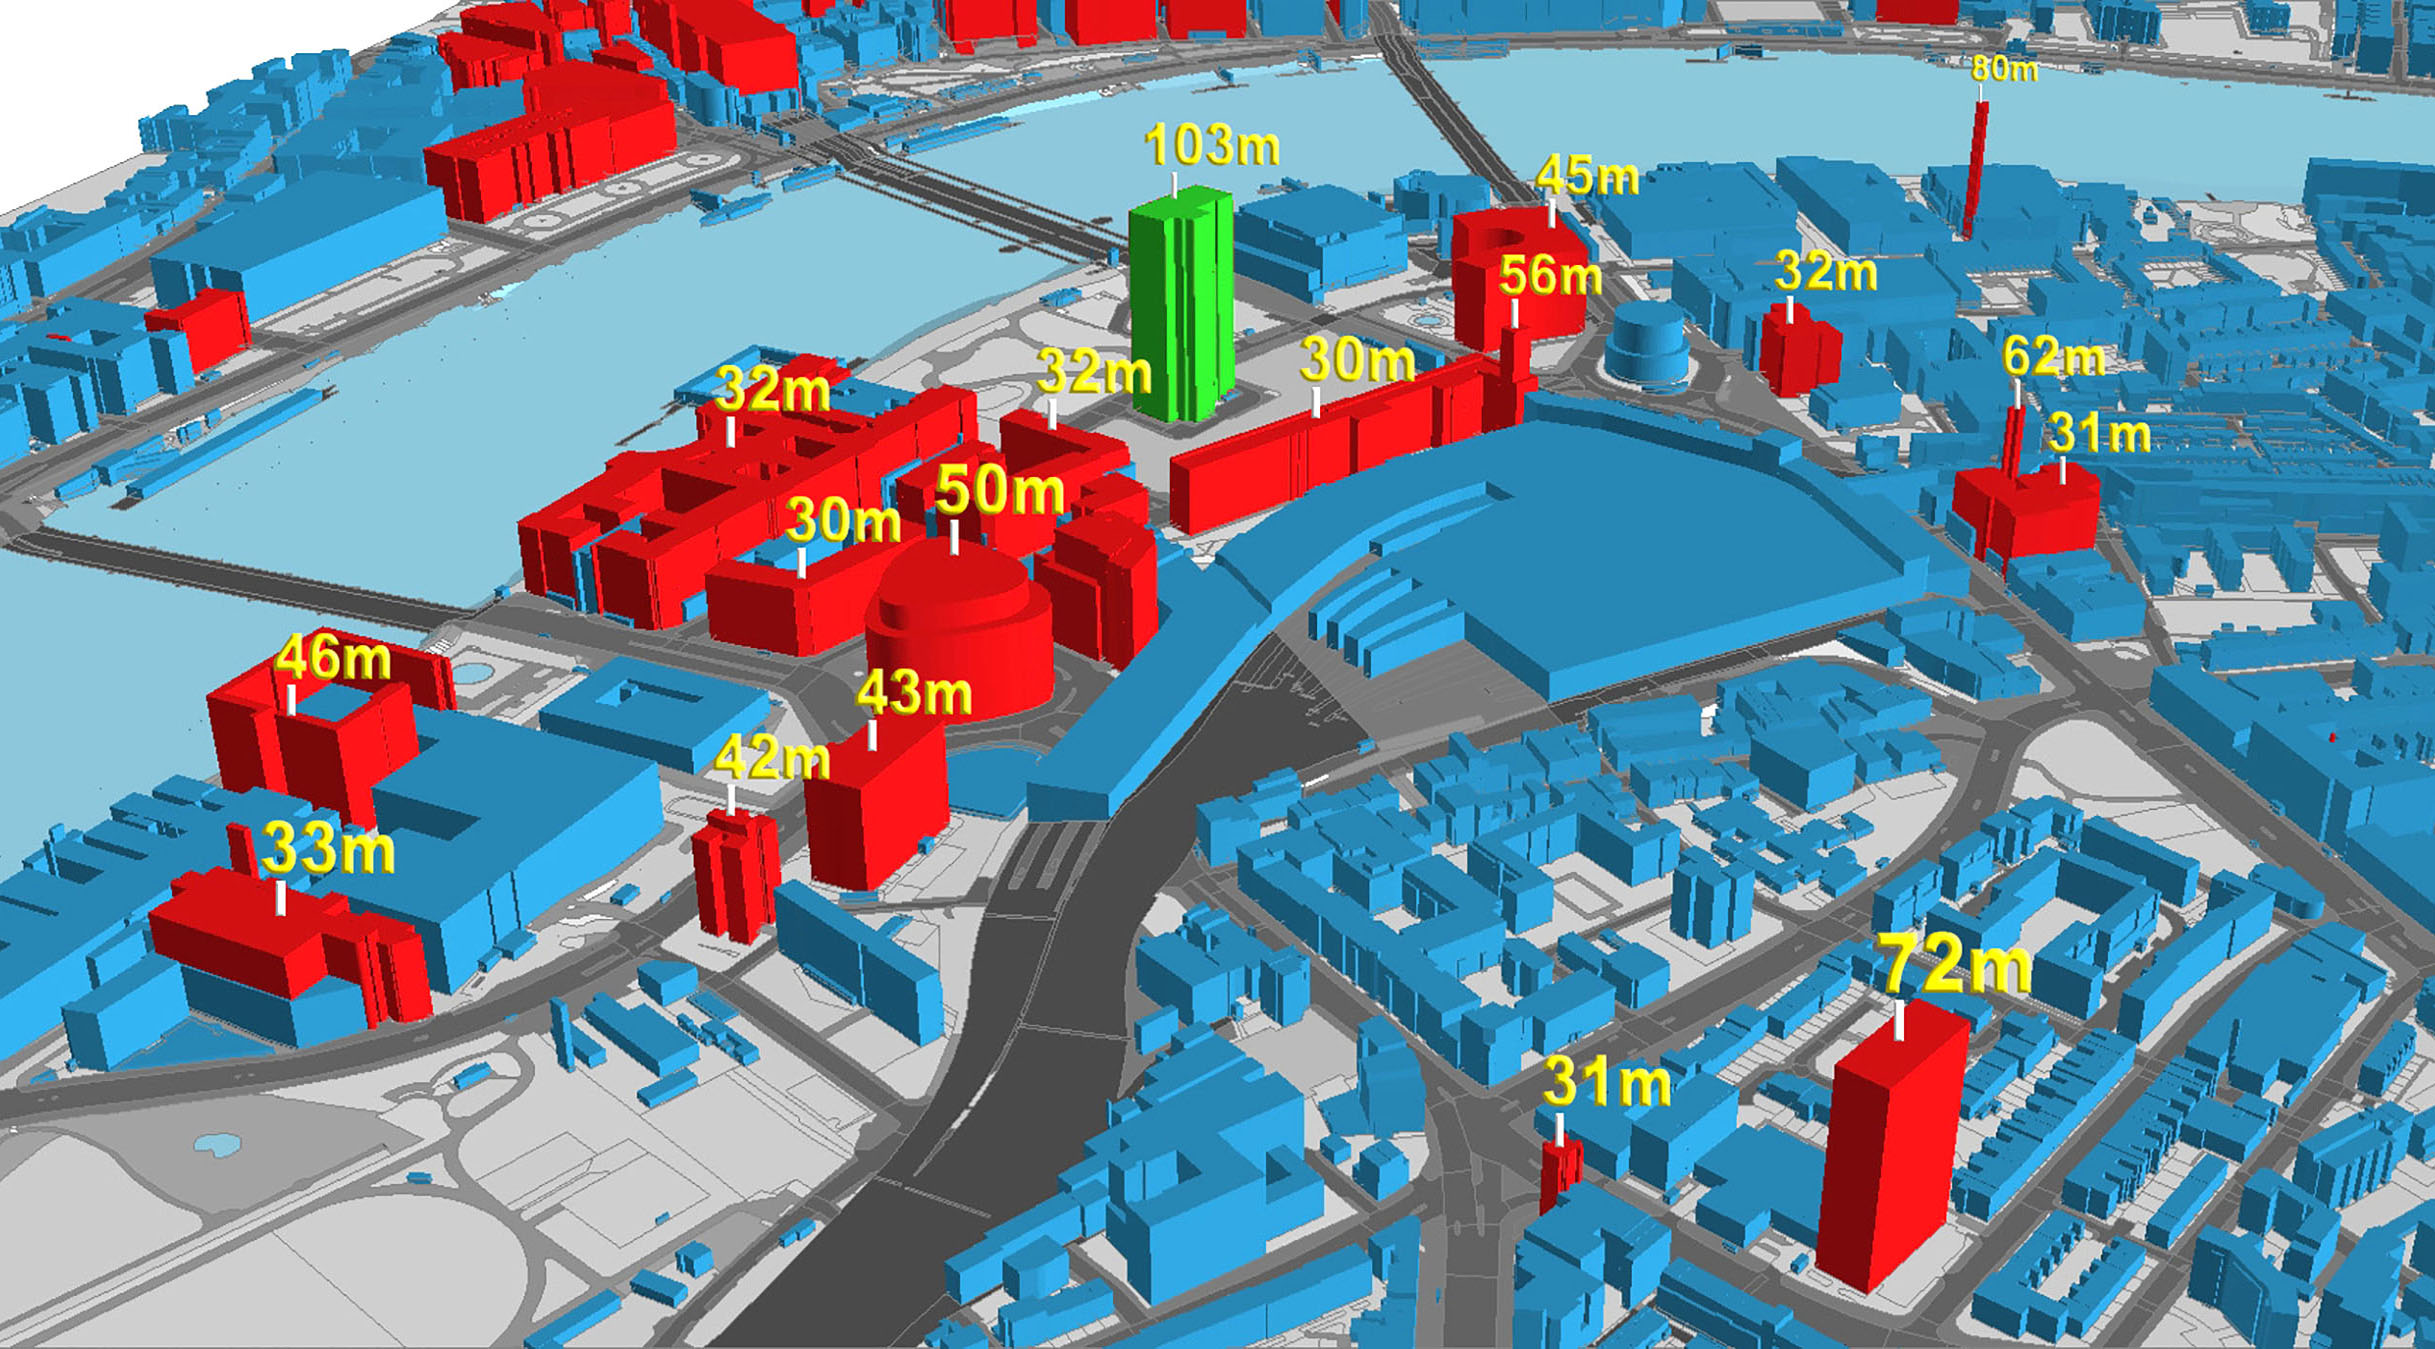 bluesky-launches-nationwide-map-for-height-measurement-for-buildings